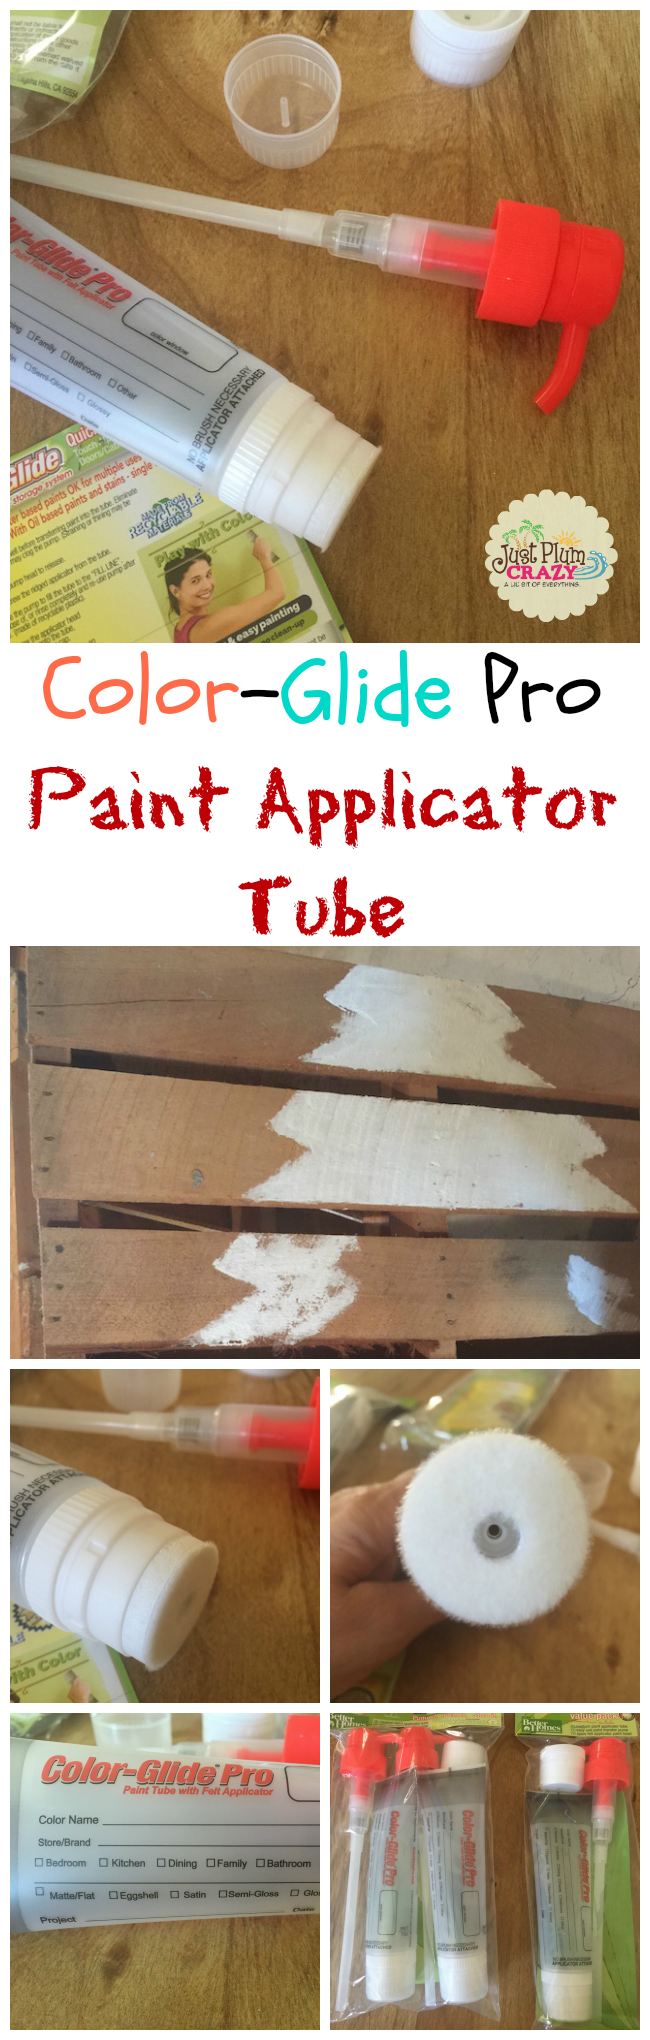 The Color-Glide® Pro Paint Applicator Tube comes with a pump, an extra tip and the paint tube. The pump easily pumps paint into the paint applicator tube.